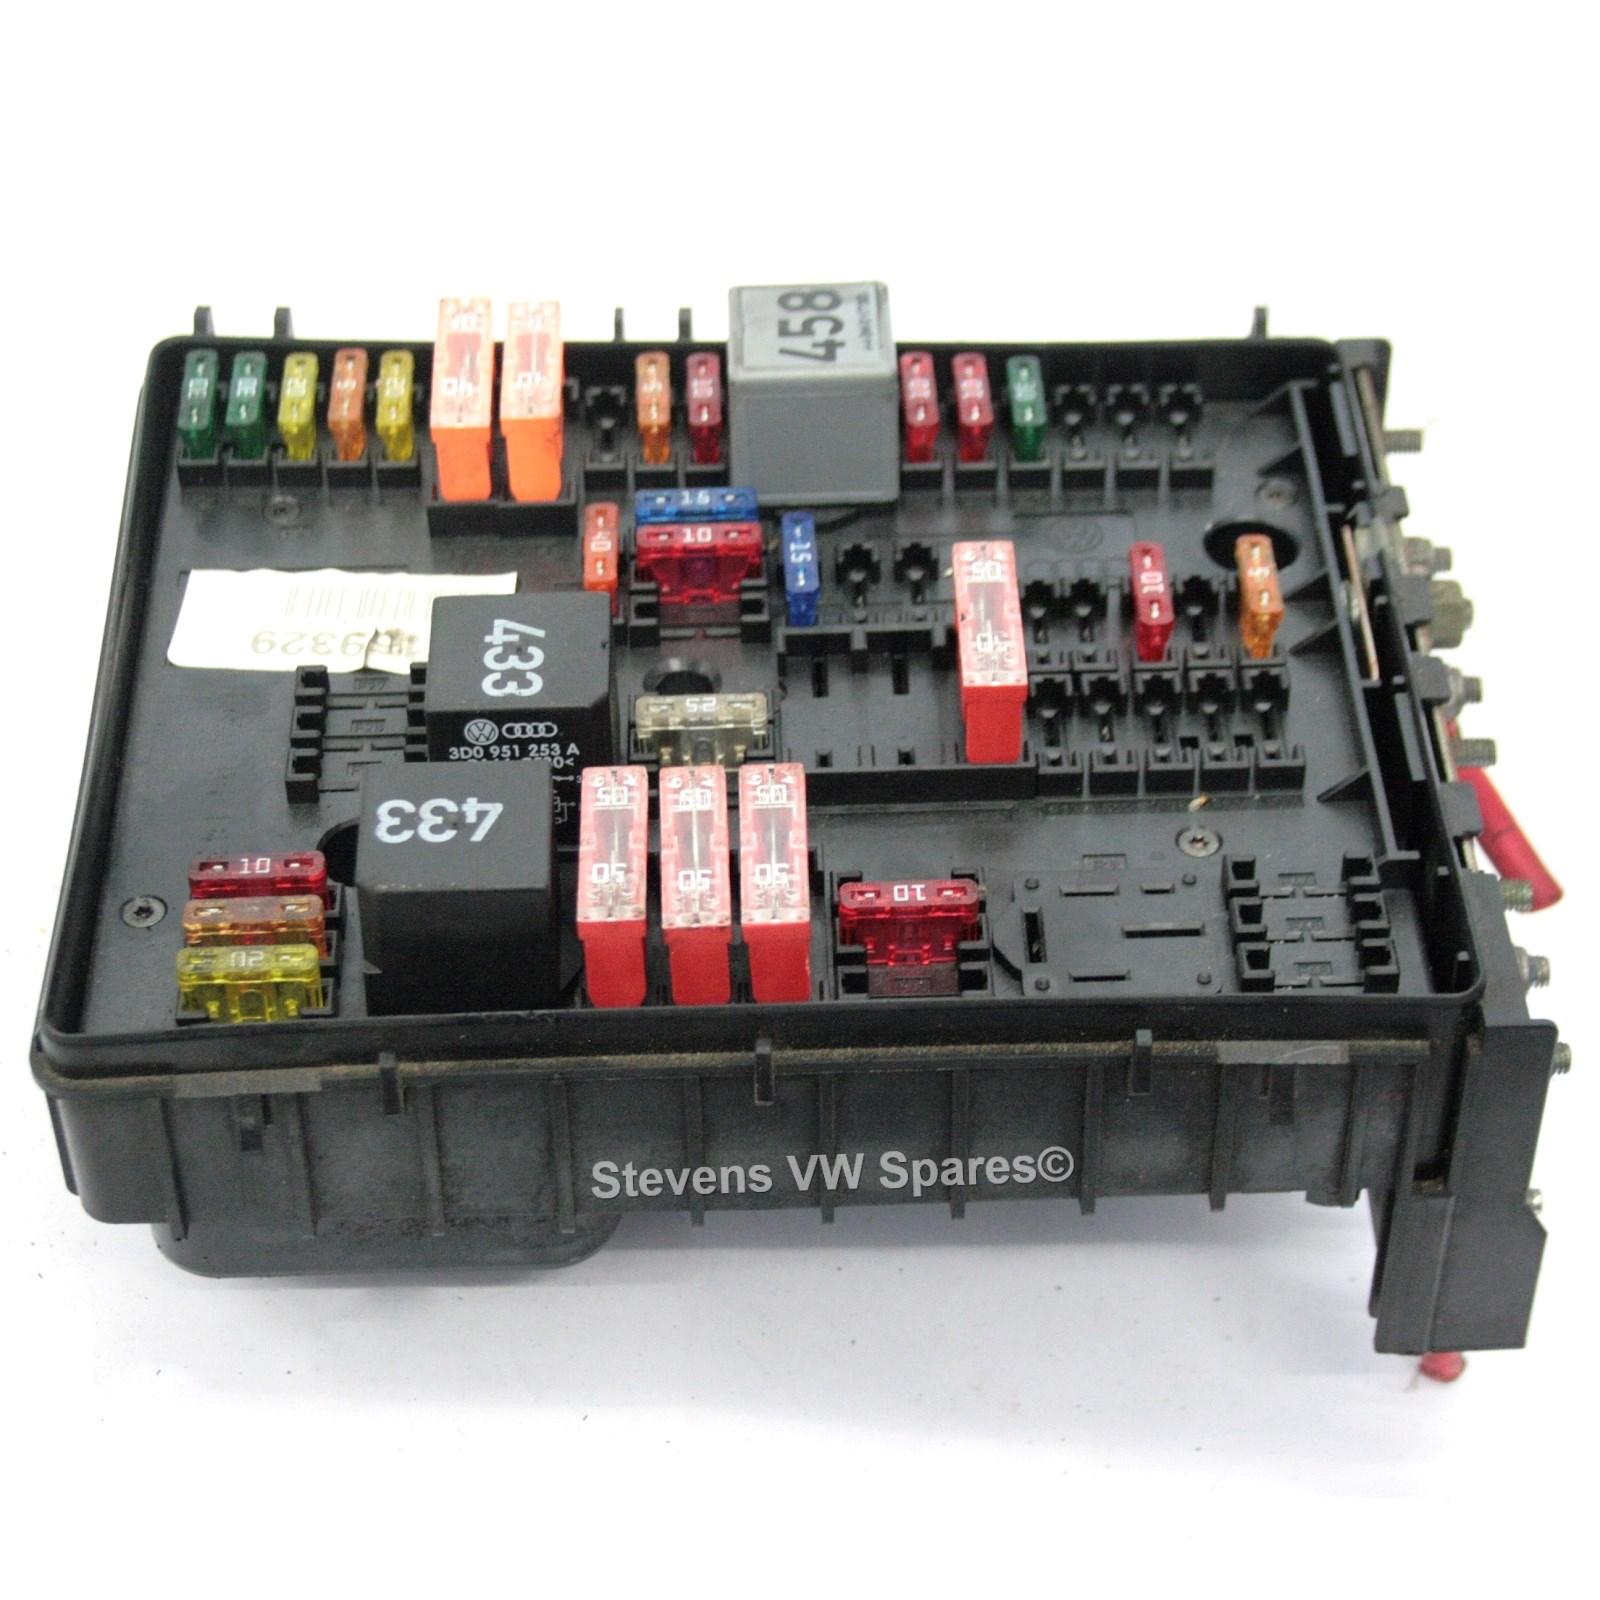 used genuine vw golf engine bay fuse box terminal 1k0 937 124 h rh stevensvwspares com Golf MK8 Golf R32